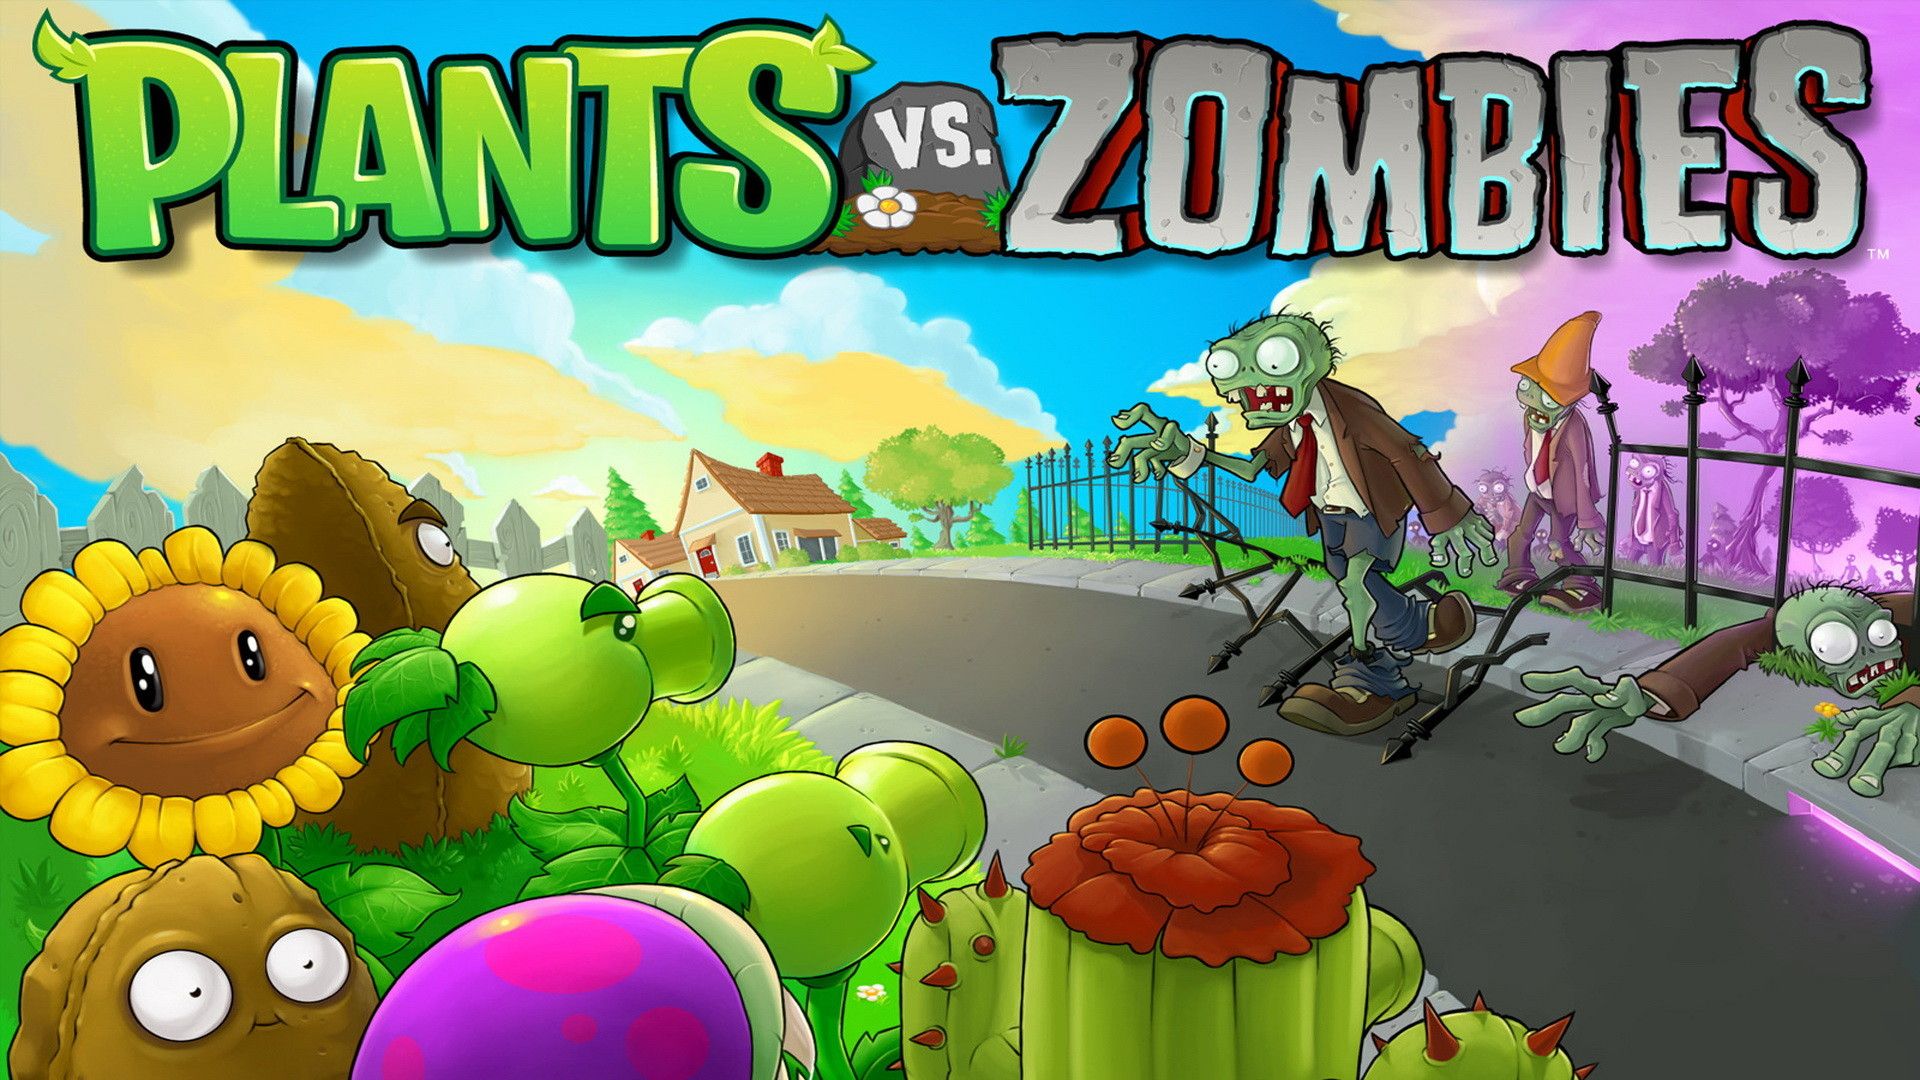 Plants Vs Zombies Wallpapers HD Backgrounds, Images, Pics, Photos .